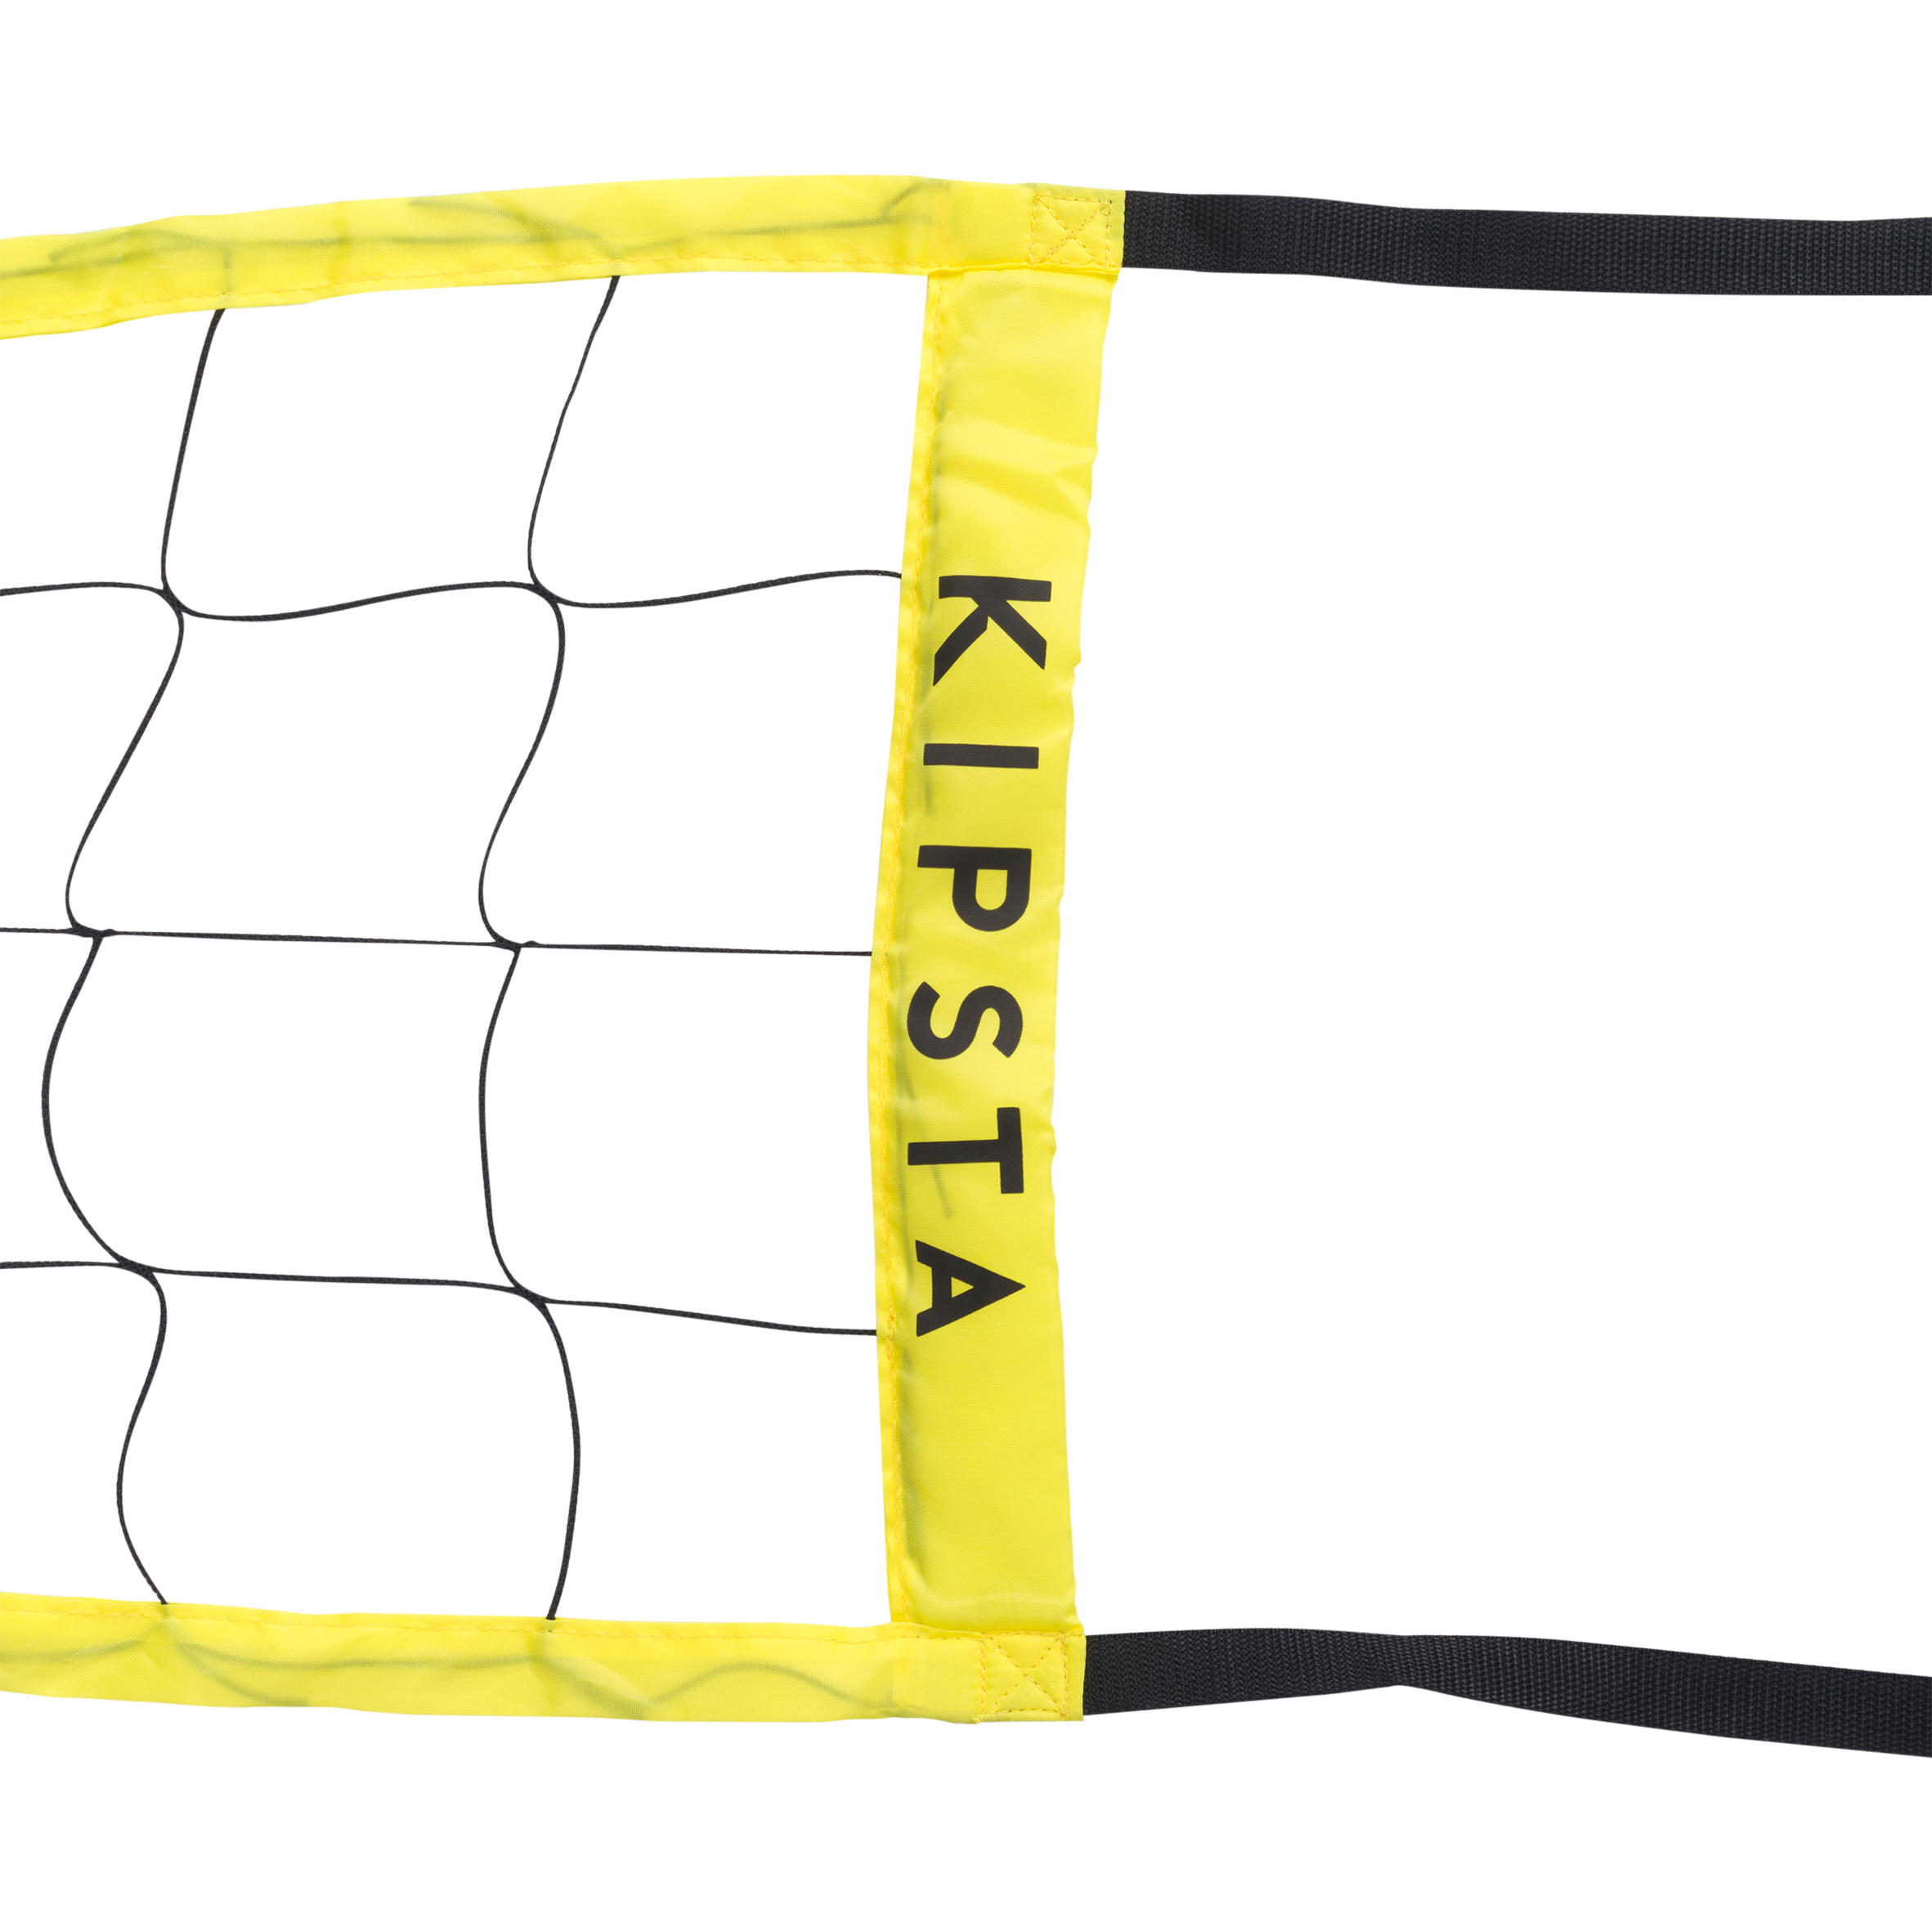 Filet de volleyball ordinaire et plage VP100 FILET PRO jaune